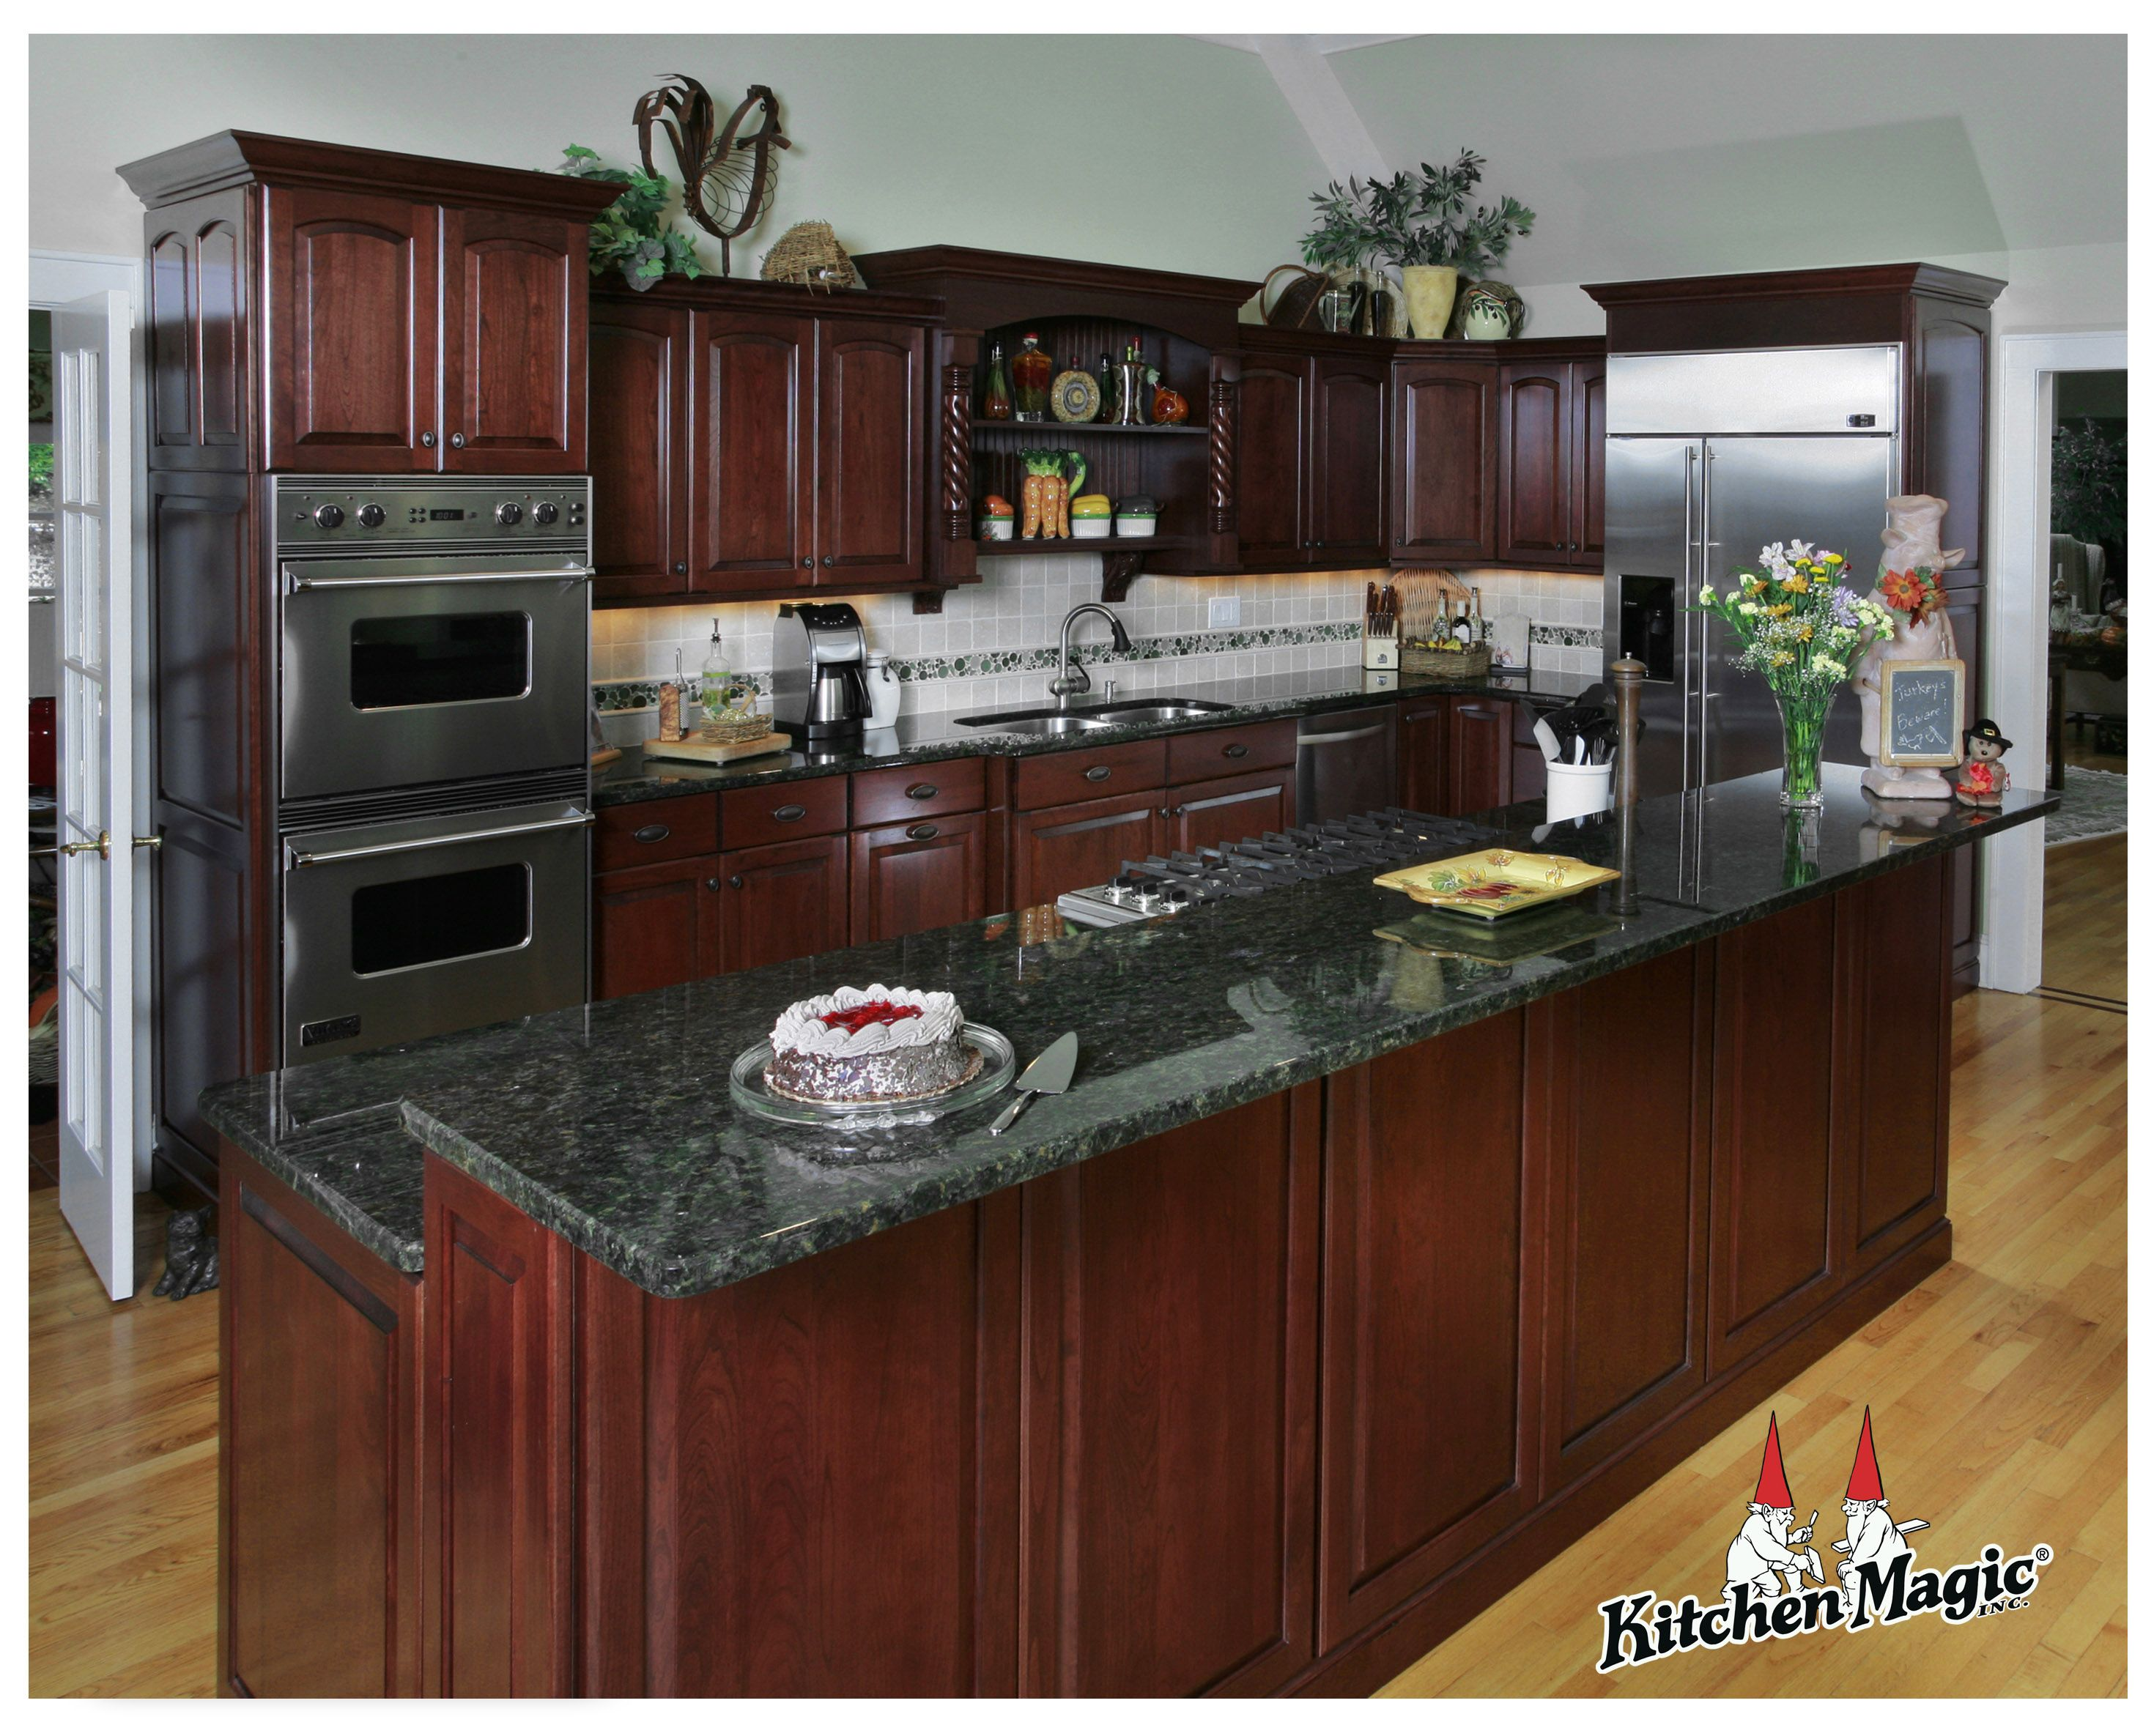 Kitchen designs cherry wood cabinets - Cordovan Cherry Wood Cabinets Kitchen Magic Inc This Is